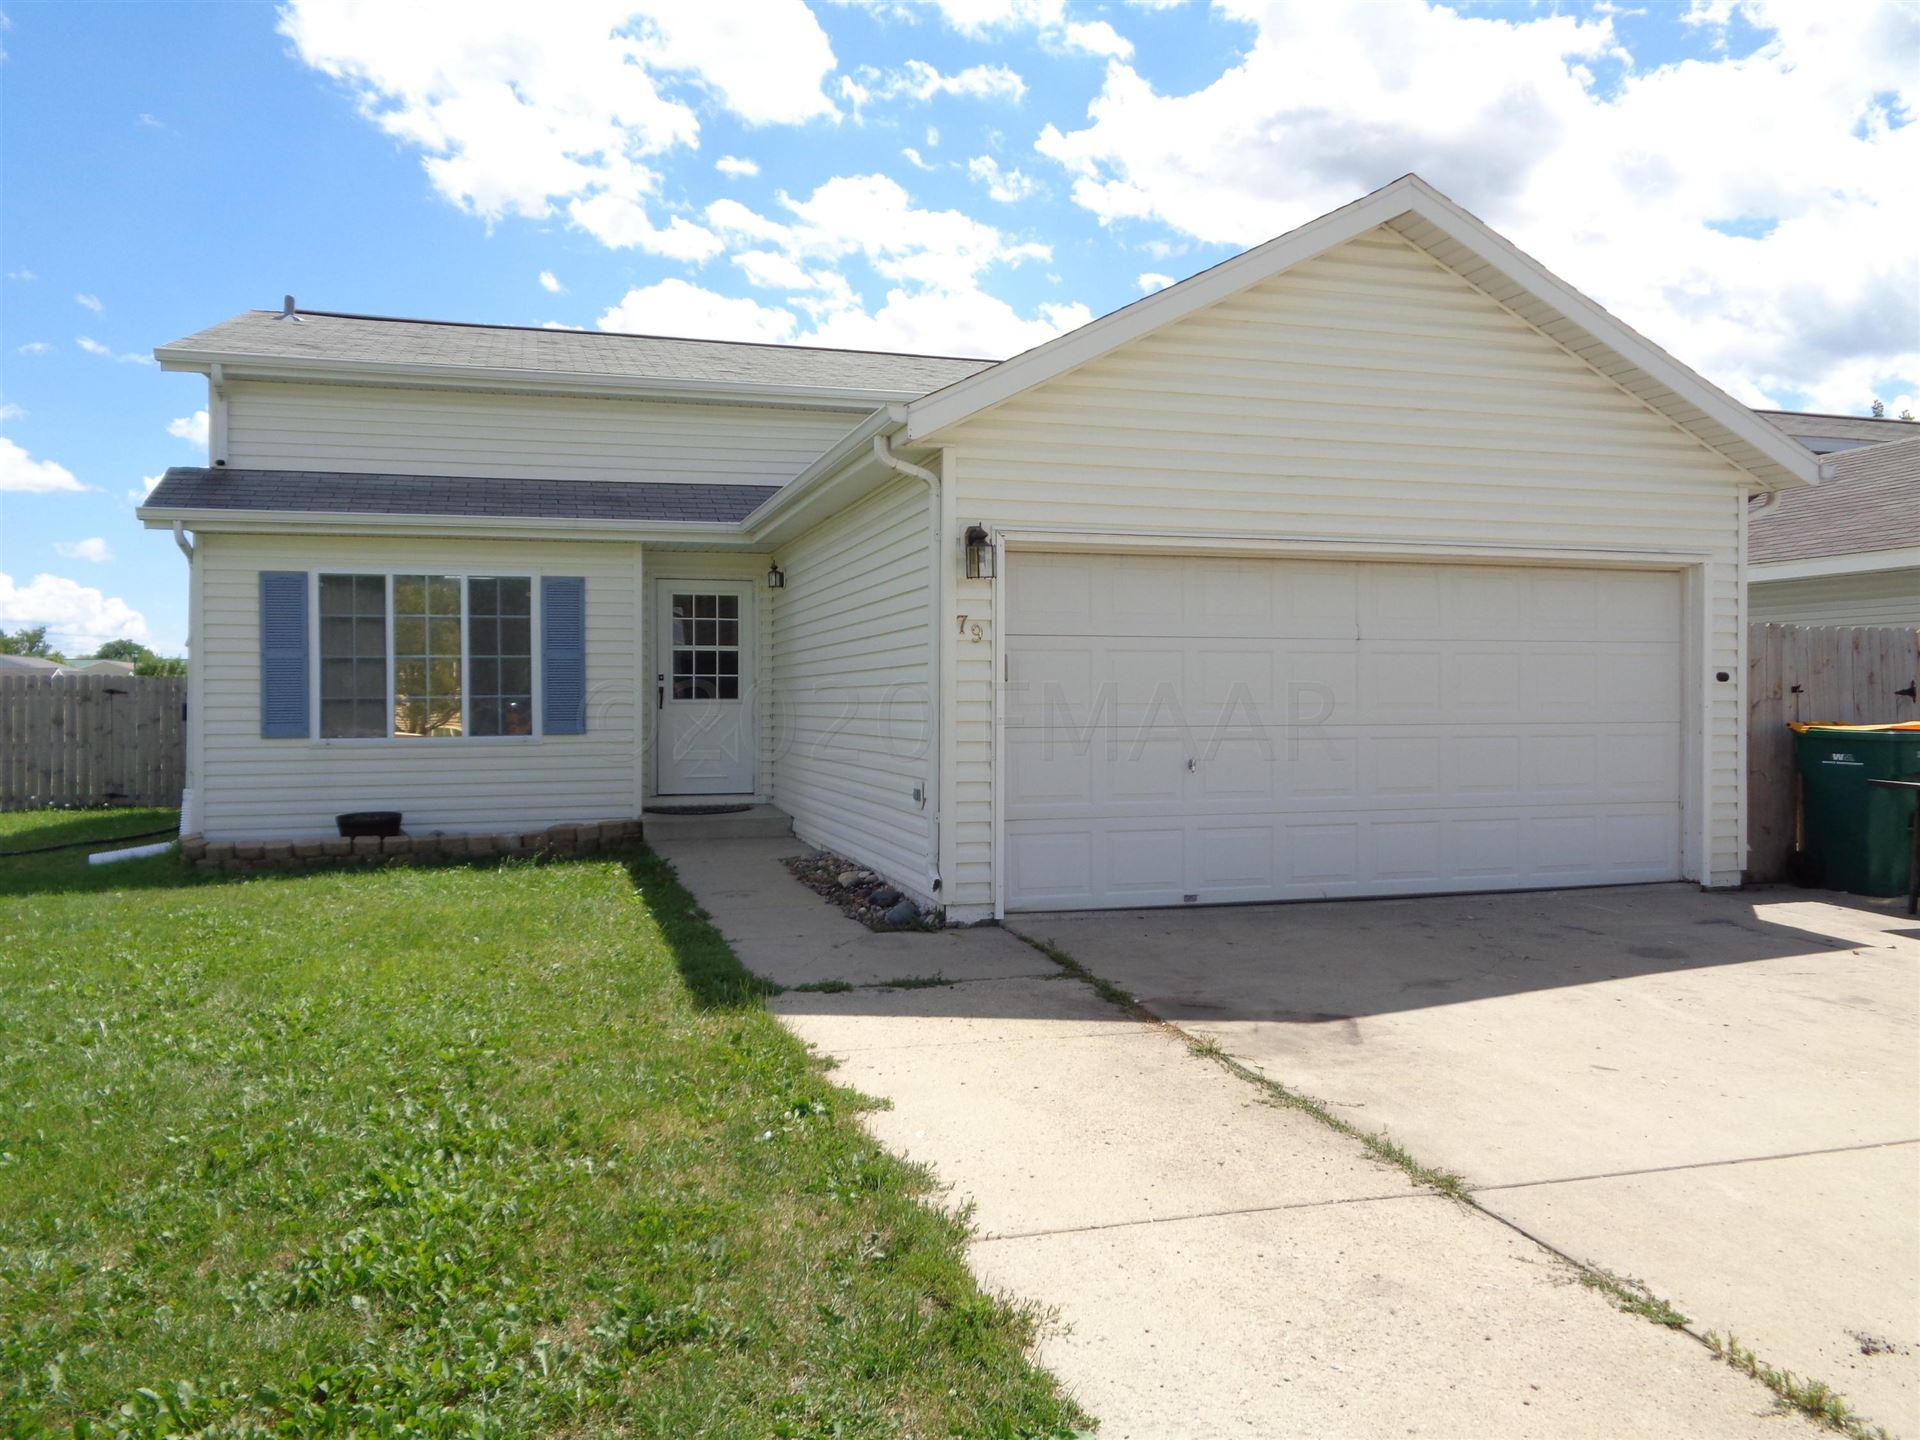 79 EVERGREEN E Circle, West Fargo, ND 58078 - #: 20-3969